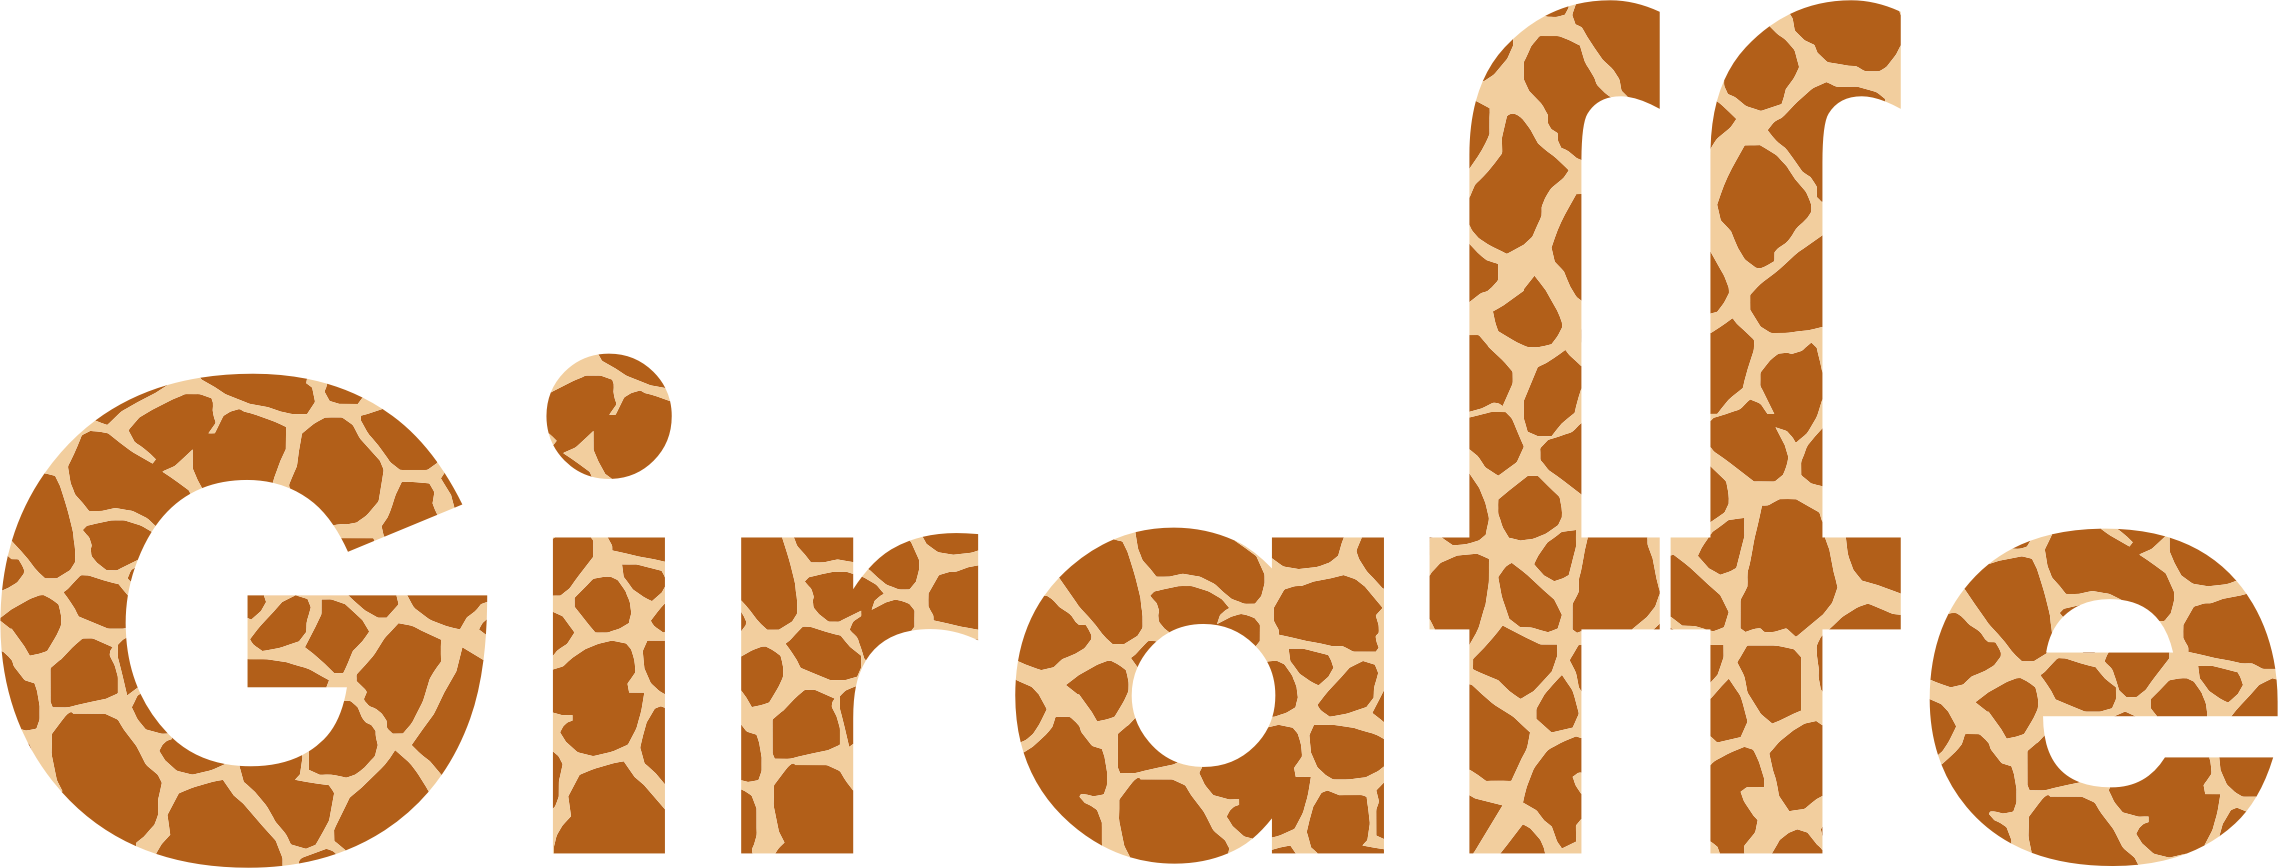 Giraffe Typography by GDJ